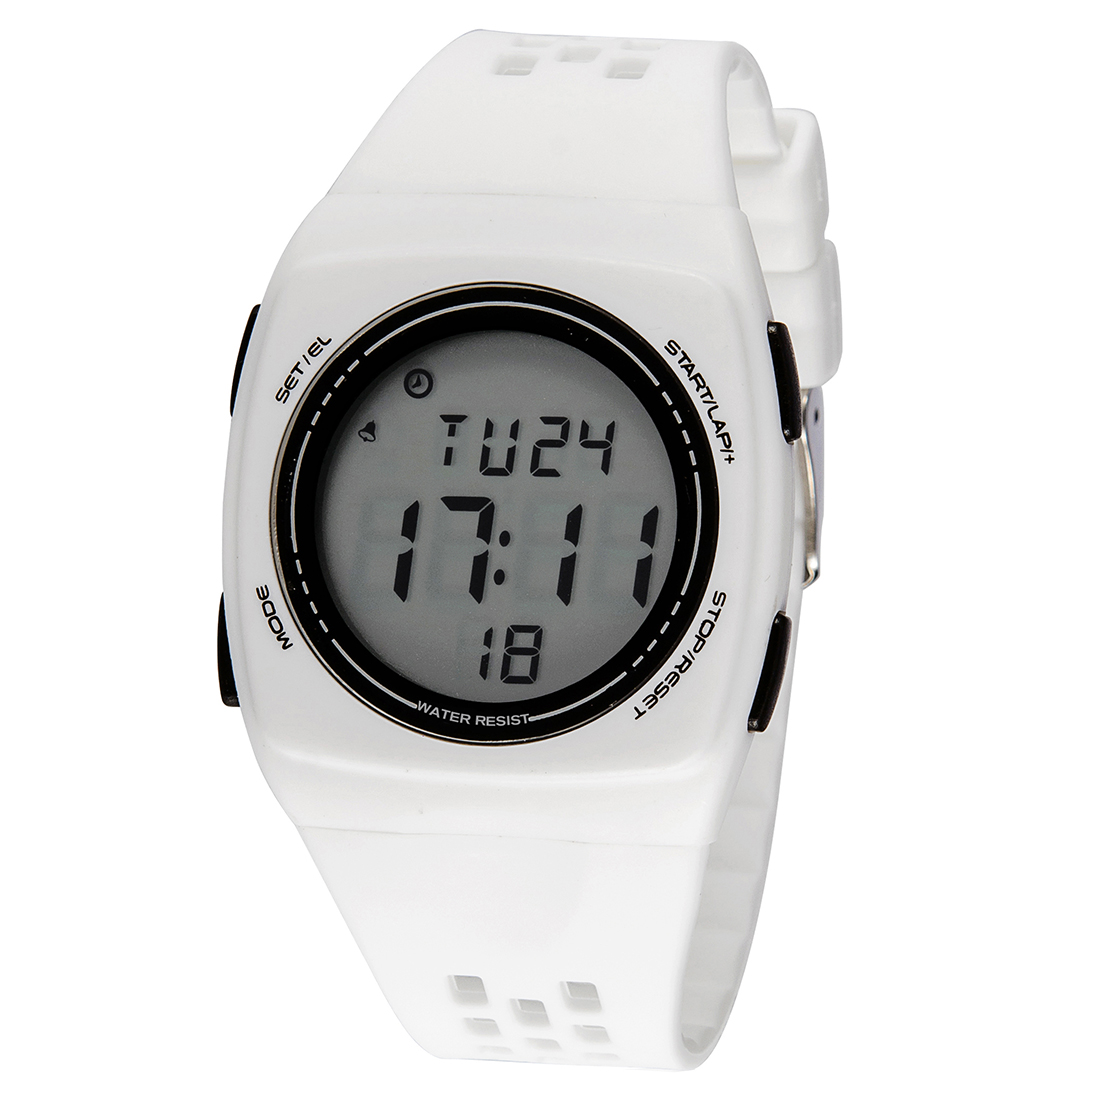 SYNOKE Digital Watch Waterproof Personality Gift Creative Fashion Electronic Watch Slimming Movement Multi-function Watch 67986